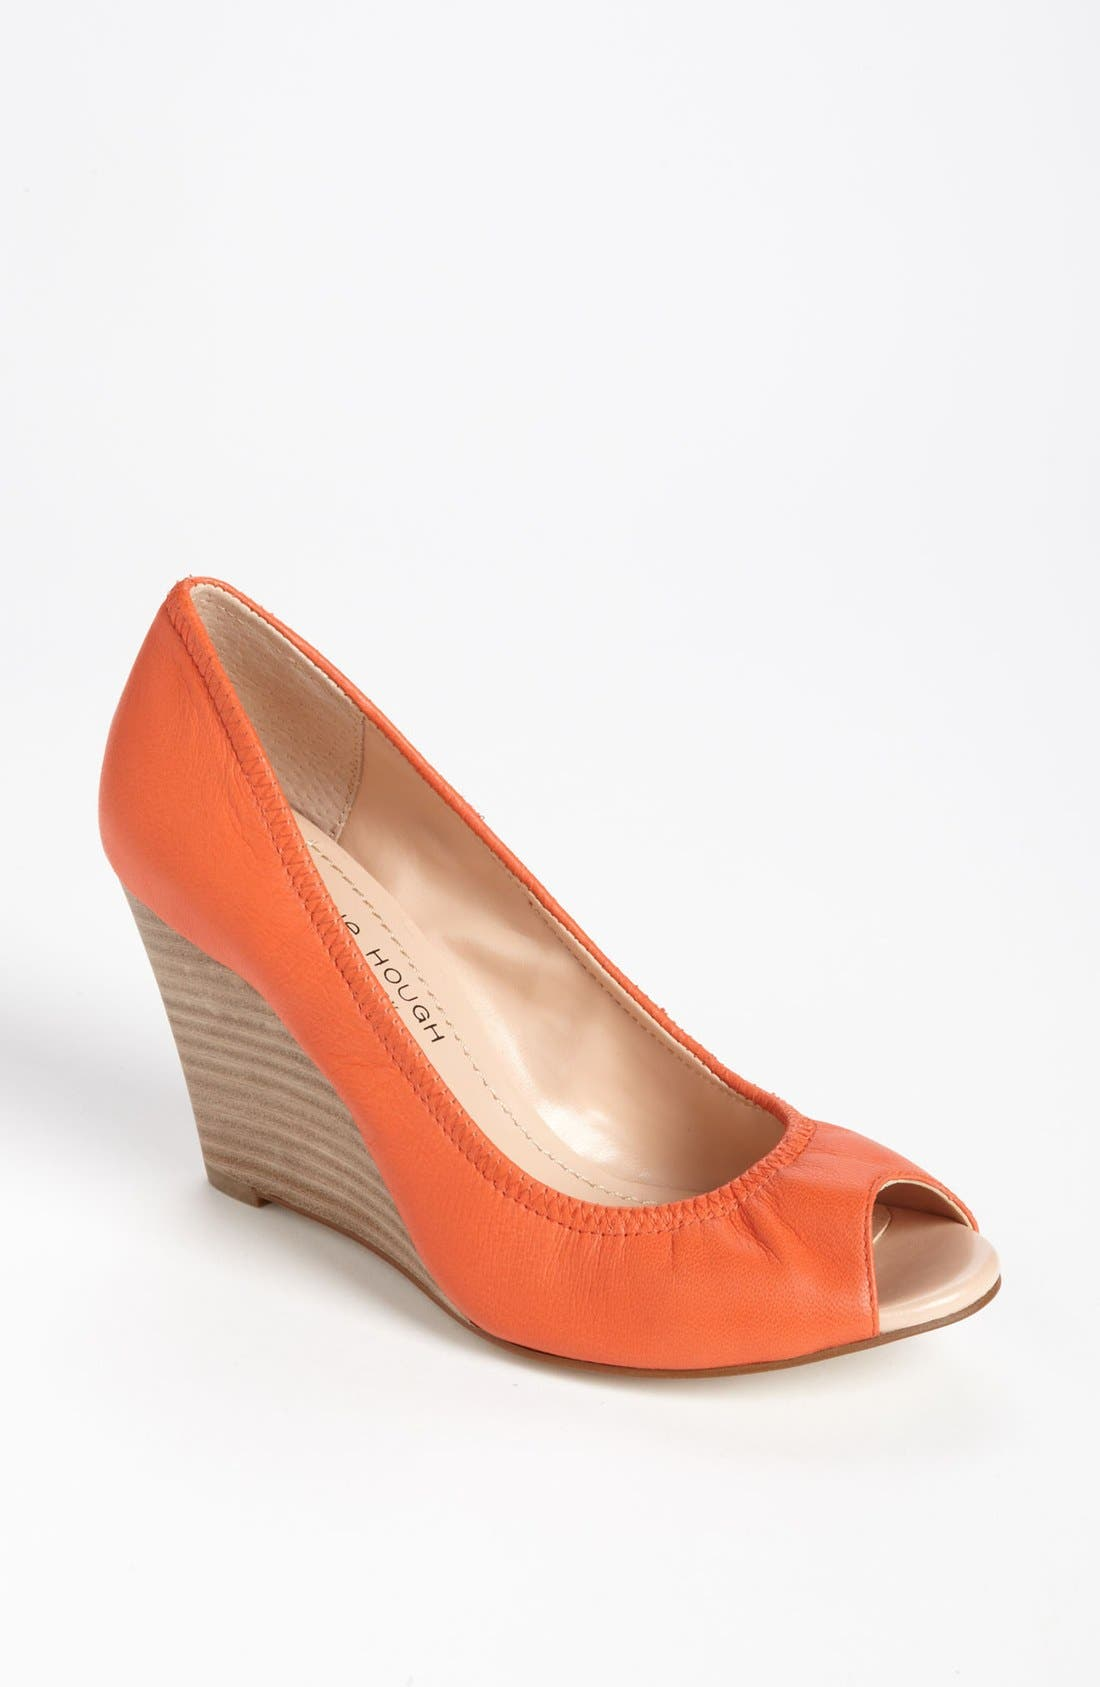 Main Image - Julianne Hough for Sole Society 'Carolina' Pump